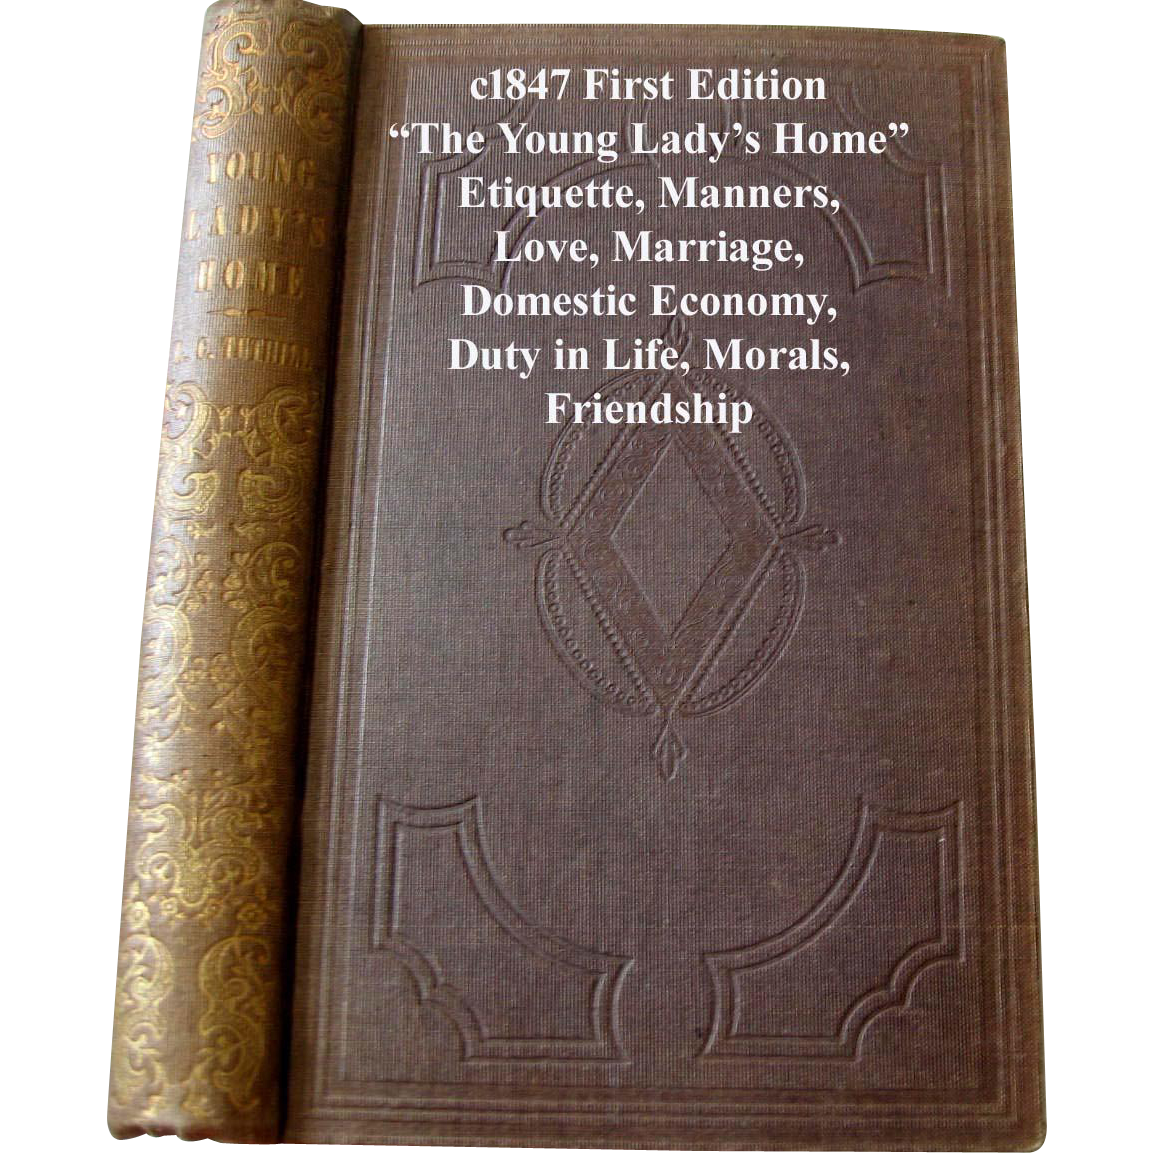 c1847 The Young Ladys Home Book Pre Civil War Etiquette Manners Love Marriage Fashion Corsets Domestic Economy Duty in Life Moral Friendship Bride